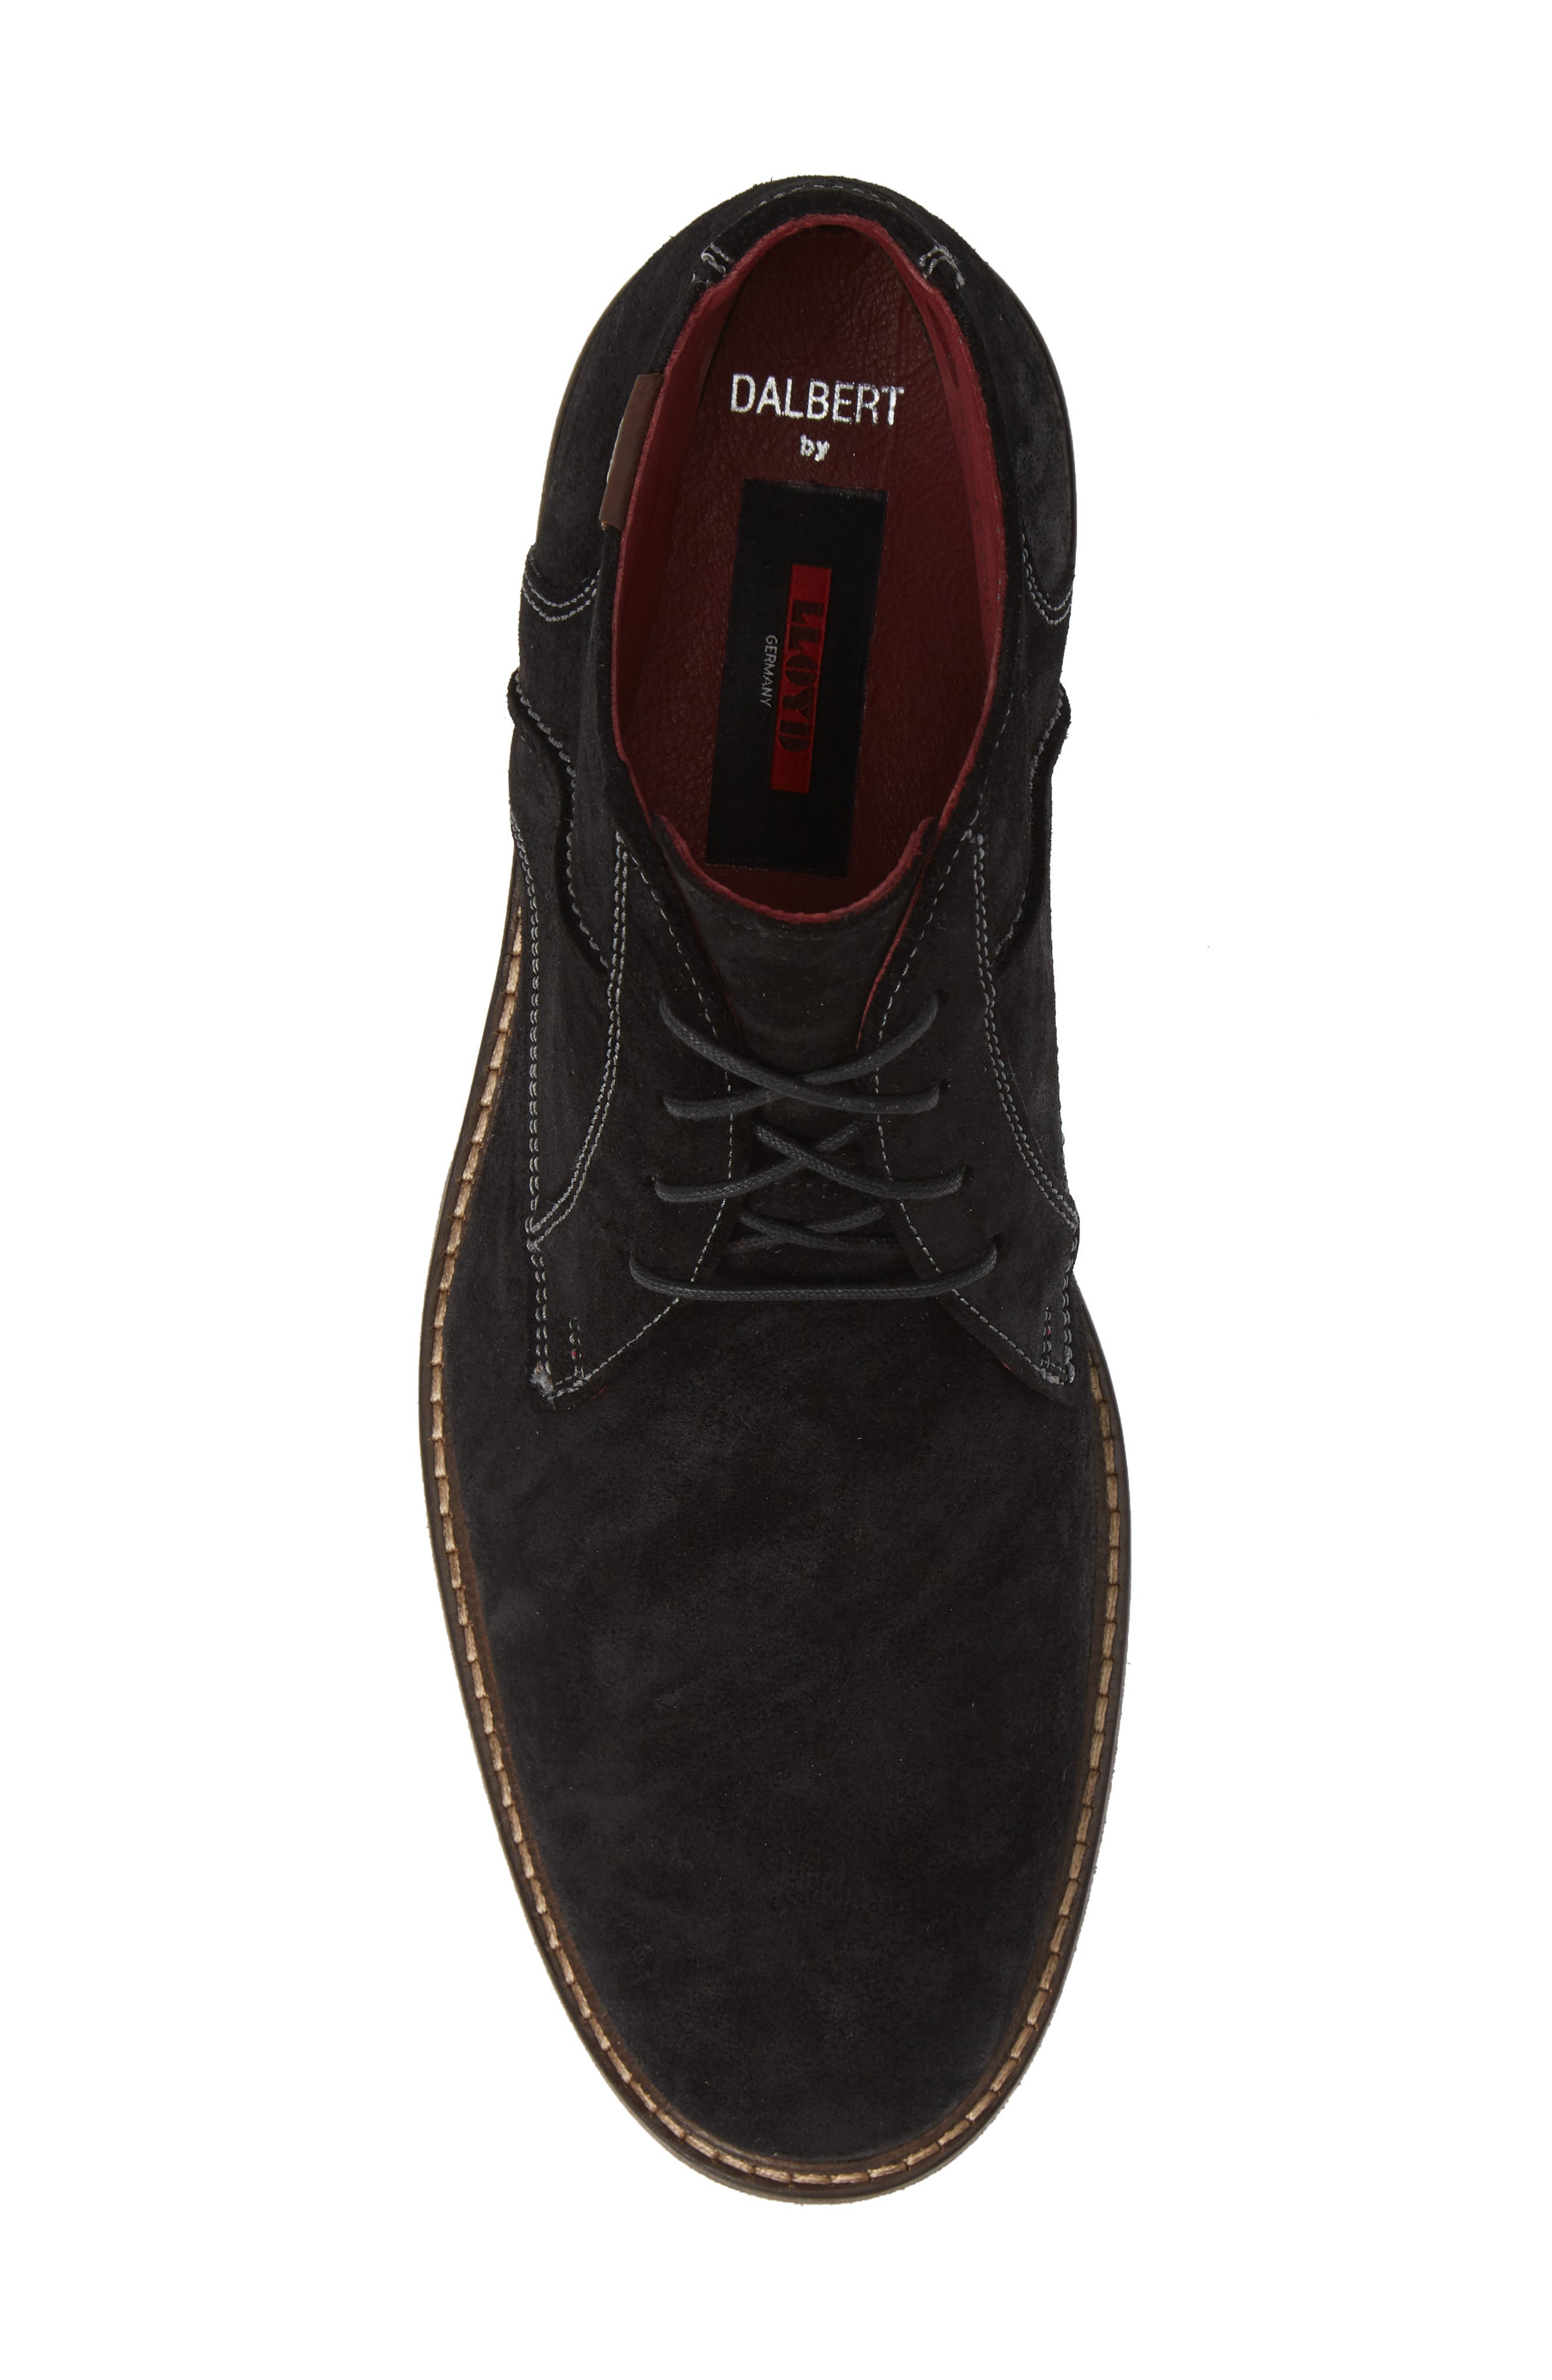 Dalbert Chukka Boot,                             Alternate thumbnail 5, color,                             BLACK/ KENIA SUEDE